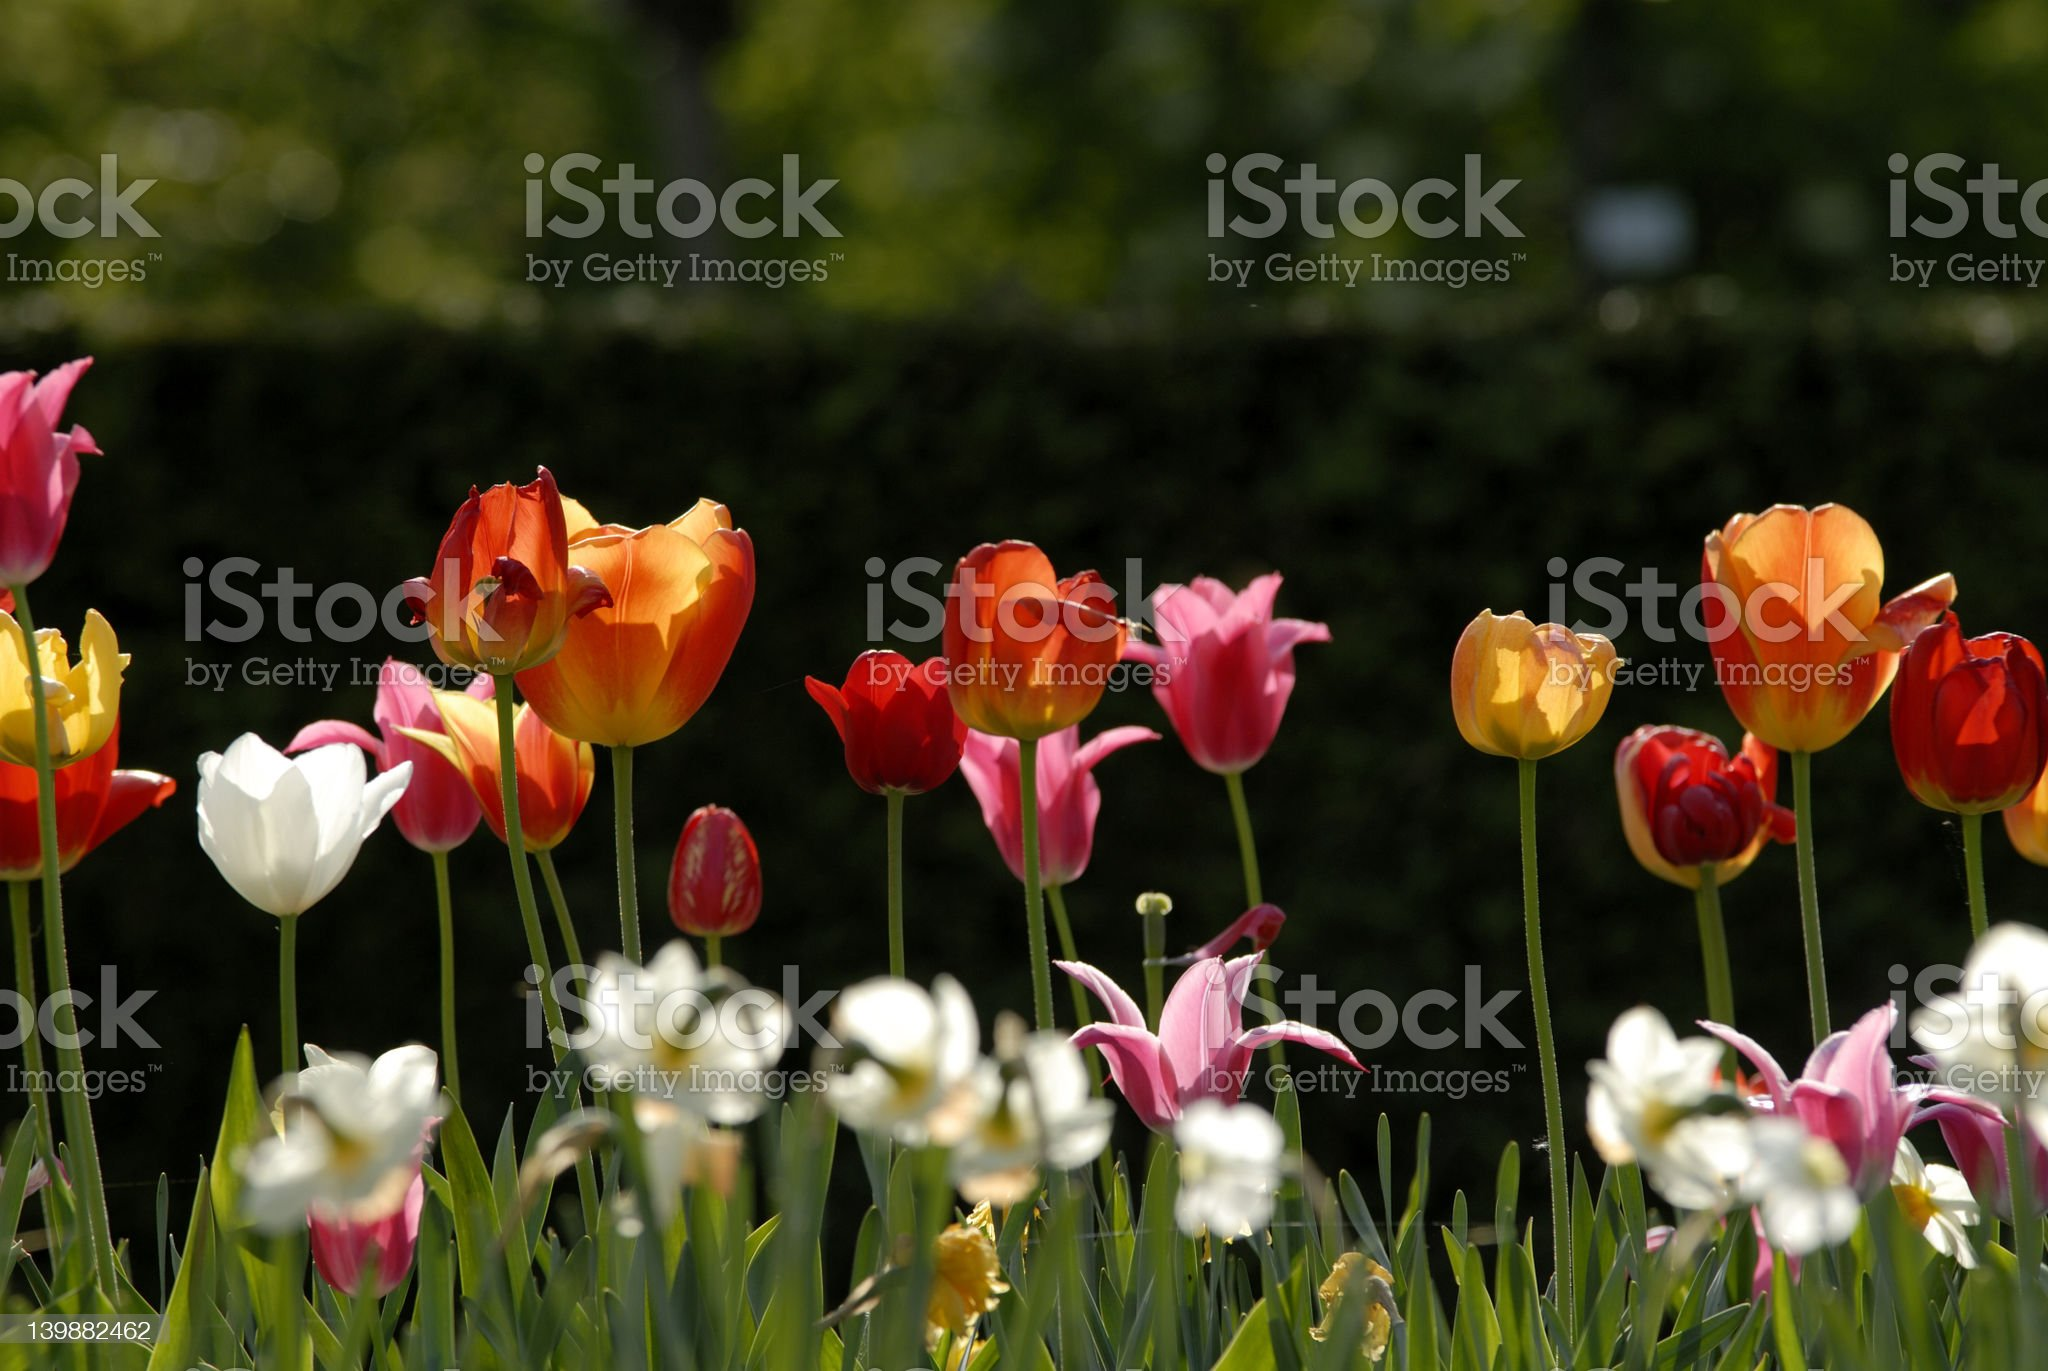 Multicolored Tulips royalty-free stock photo